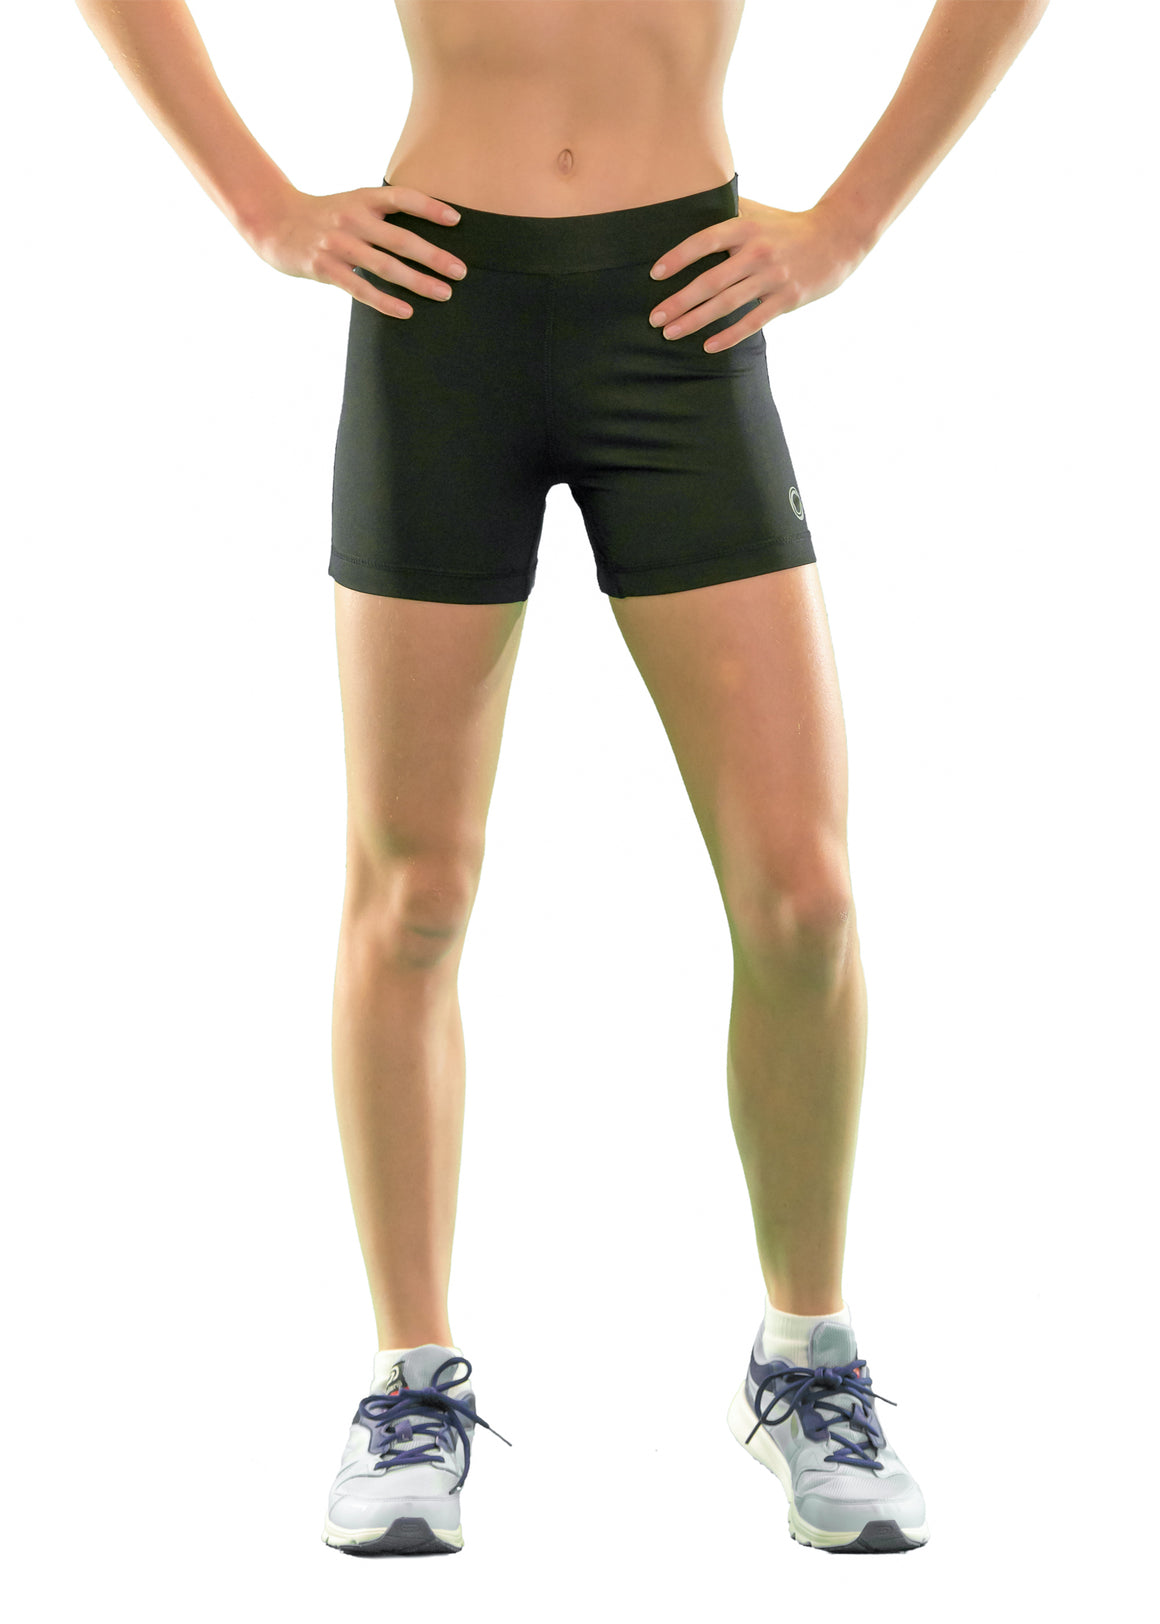 everactiv core elite black sport tight shorts for girls